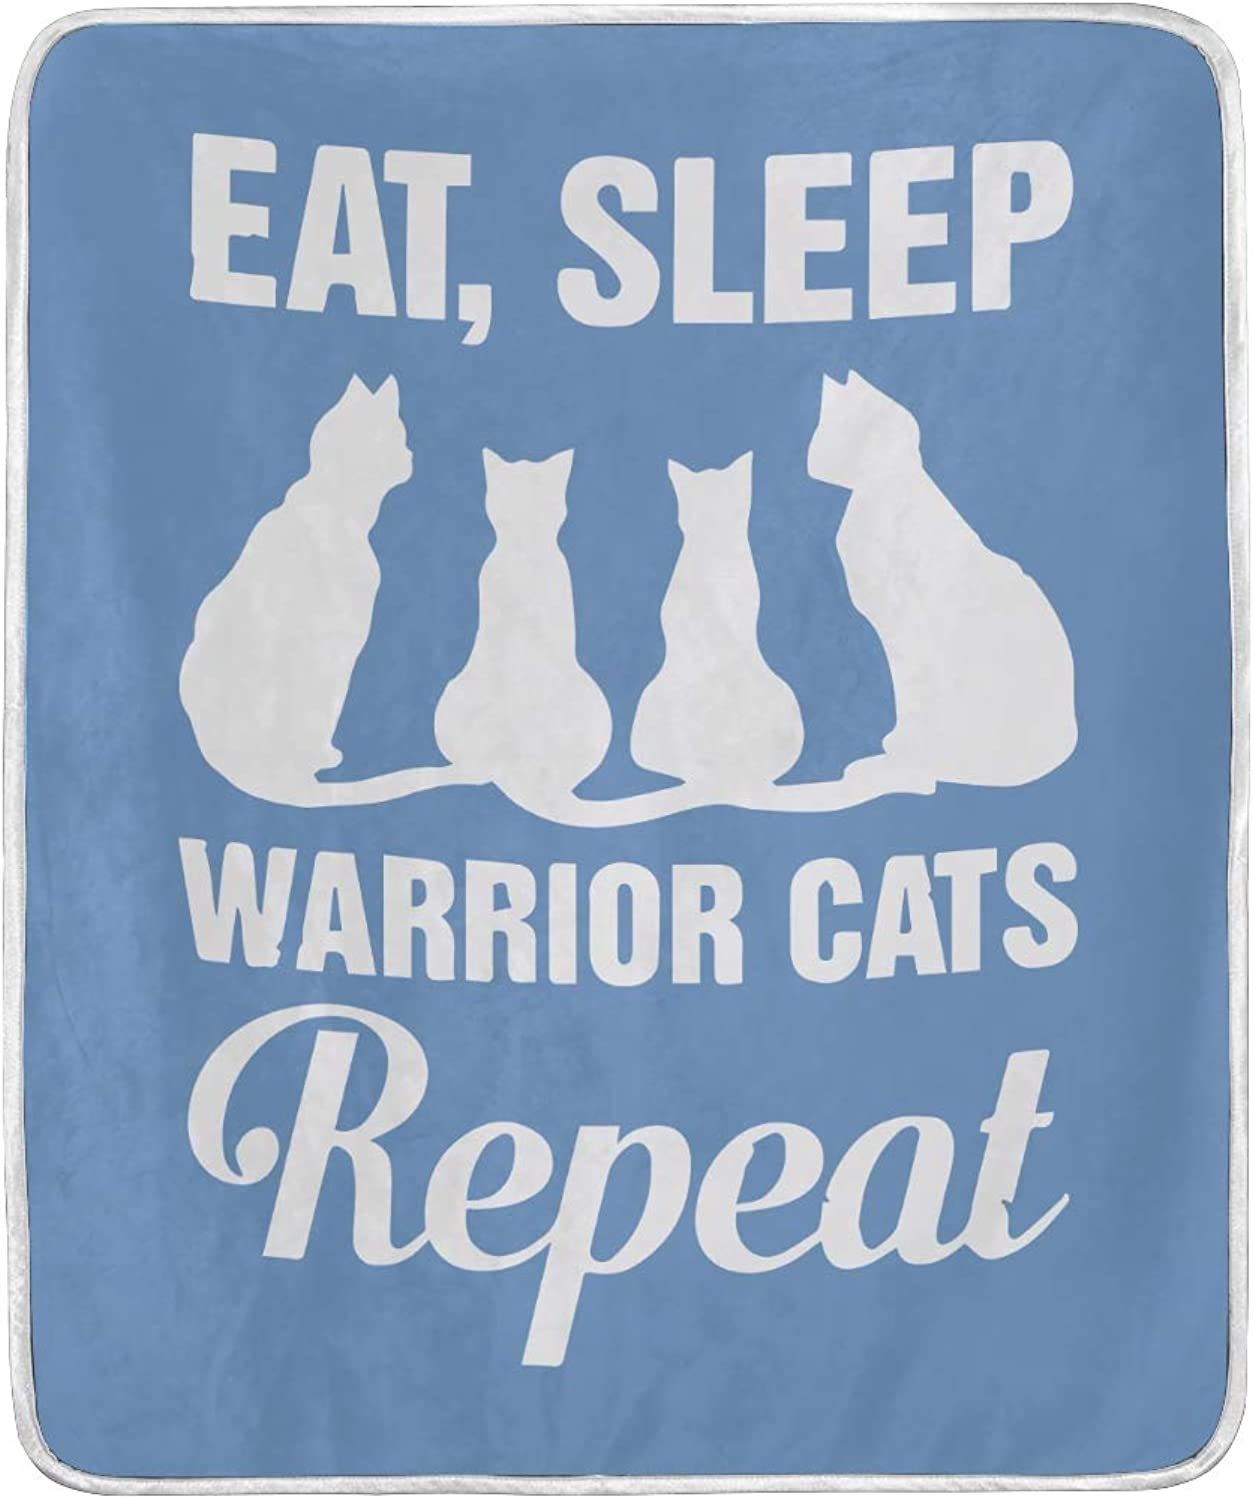 VIMMUCIR Home Decor Eat Sleep Warrior Cats Repeat Blanket Soft Warm Throw Blankets for Bed Sofa Lightweight Travelling Camping 50 x 60 Inch for Kids Adults